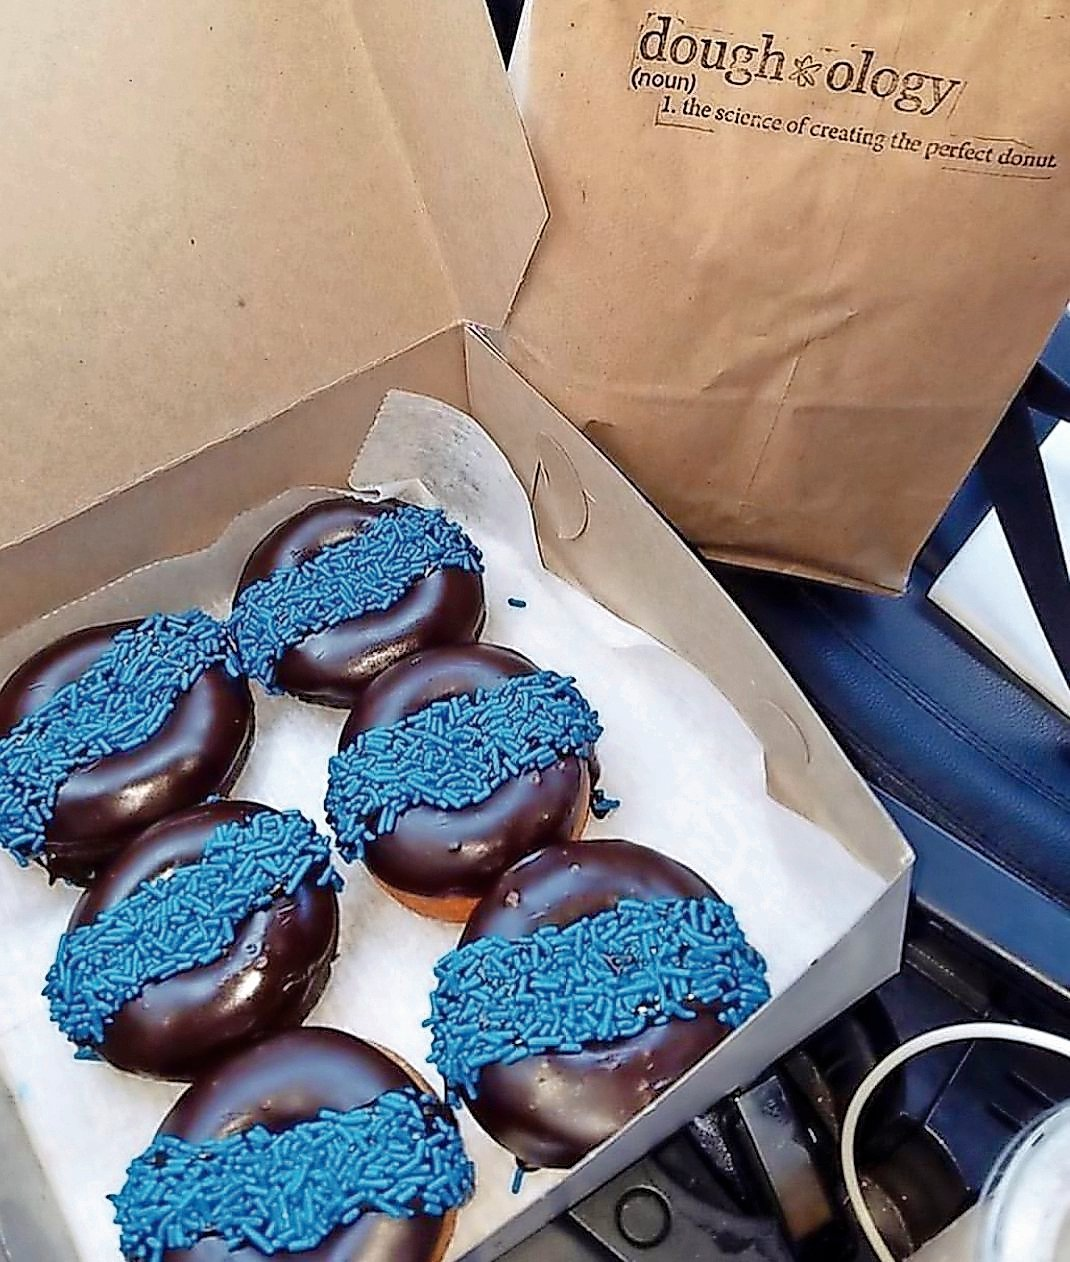 Whenever Chris Stiasen, the owner of Doughology in Lynbrook, learns about a police officer's death, he sells doughnuts with a blue stripe to collect funds for the victim's family.